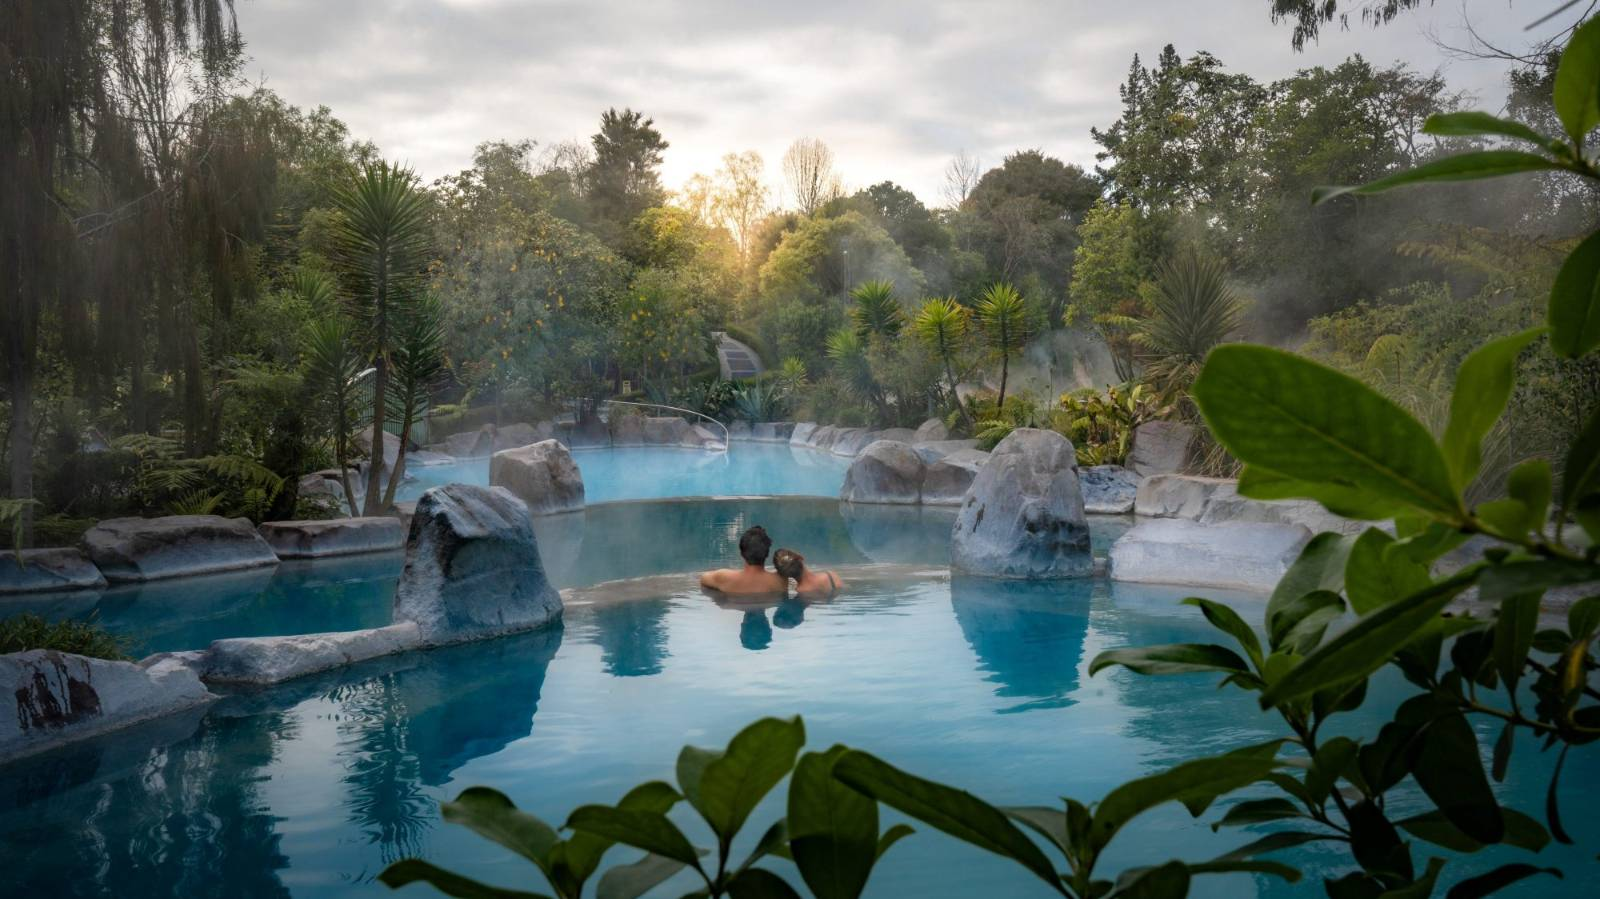 Inside NZ's hidden hot spring heated by a geyser